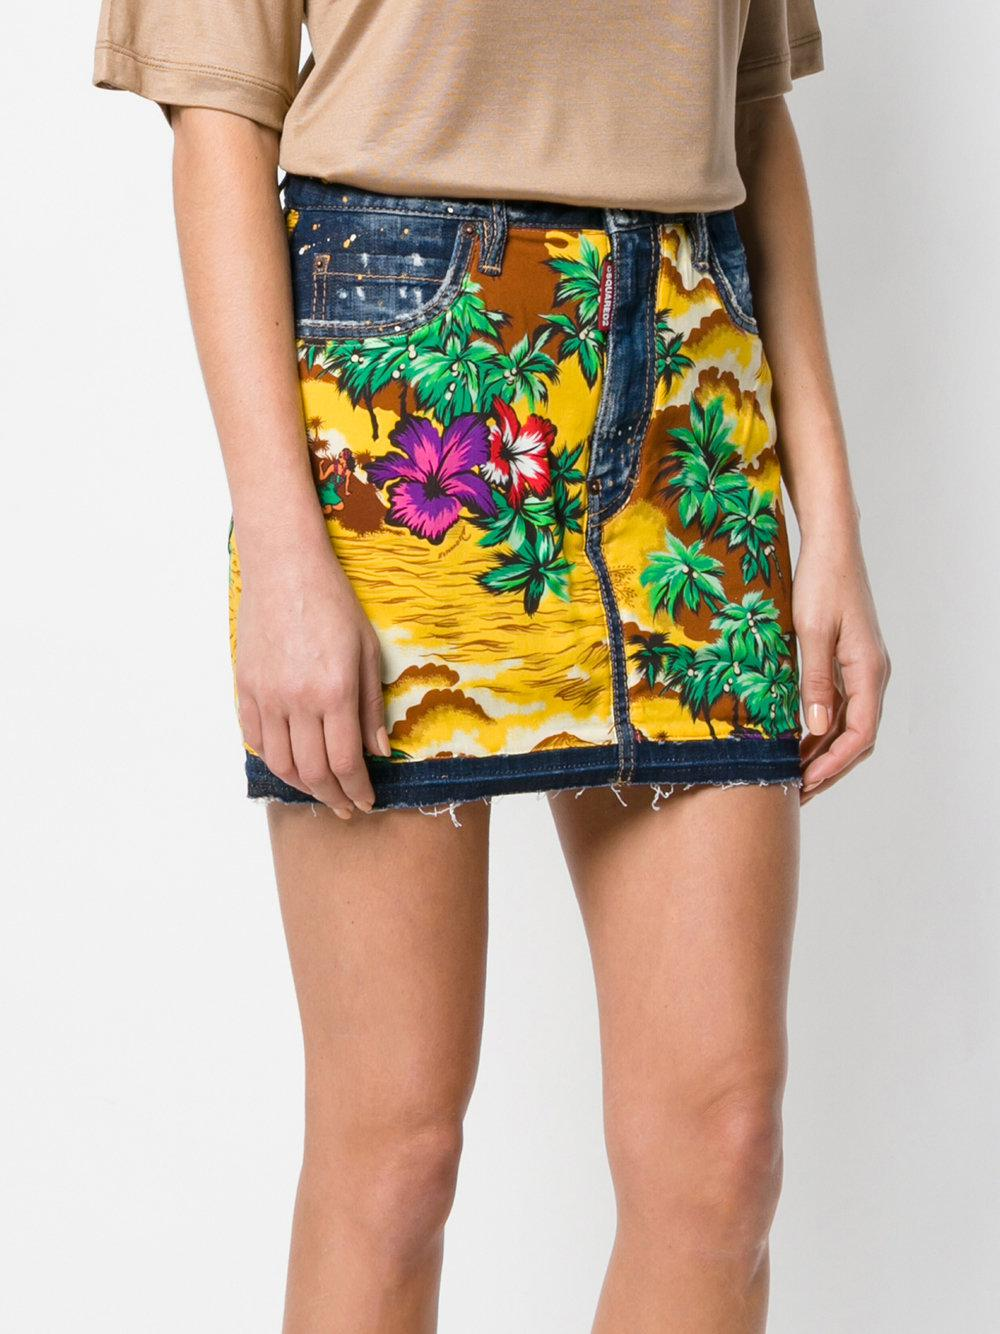 Buy Hawaiian print denim skirt - Multicolour Dsquared2 Browse Shipping Outlet Store Online cwWR8PM1Y